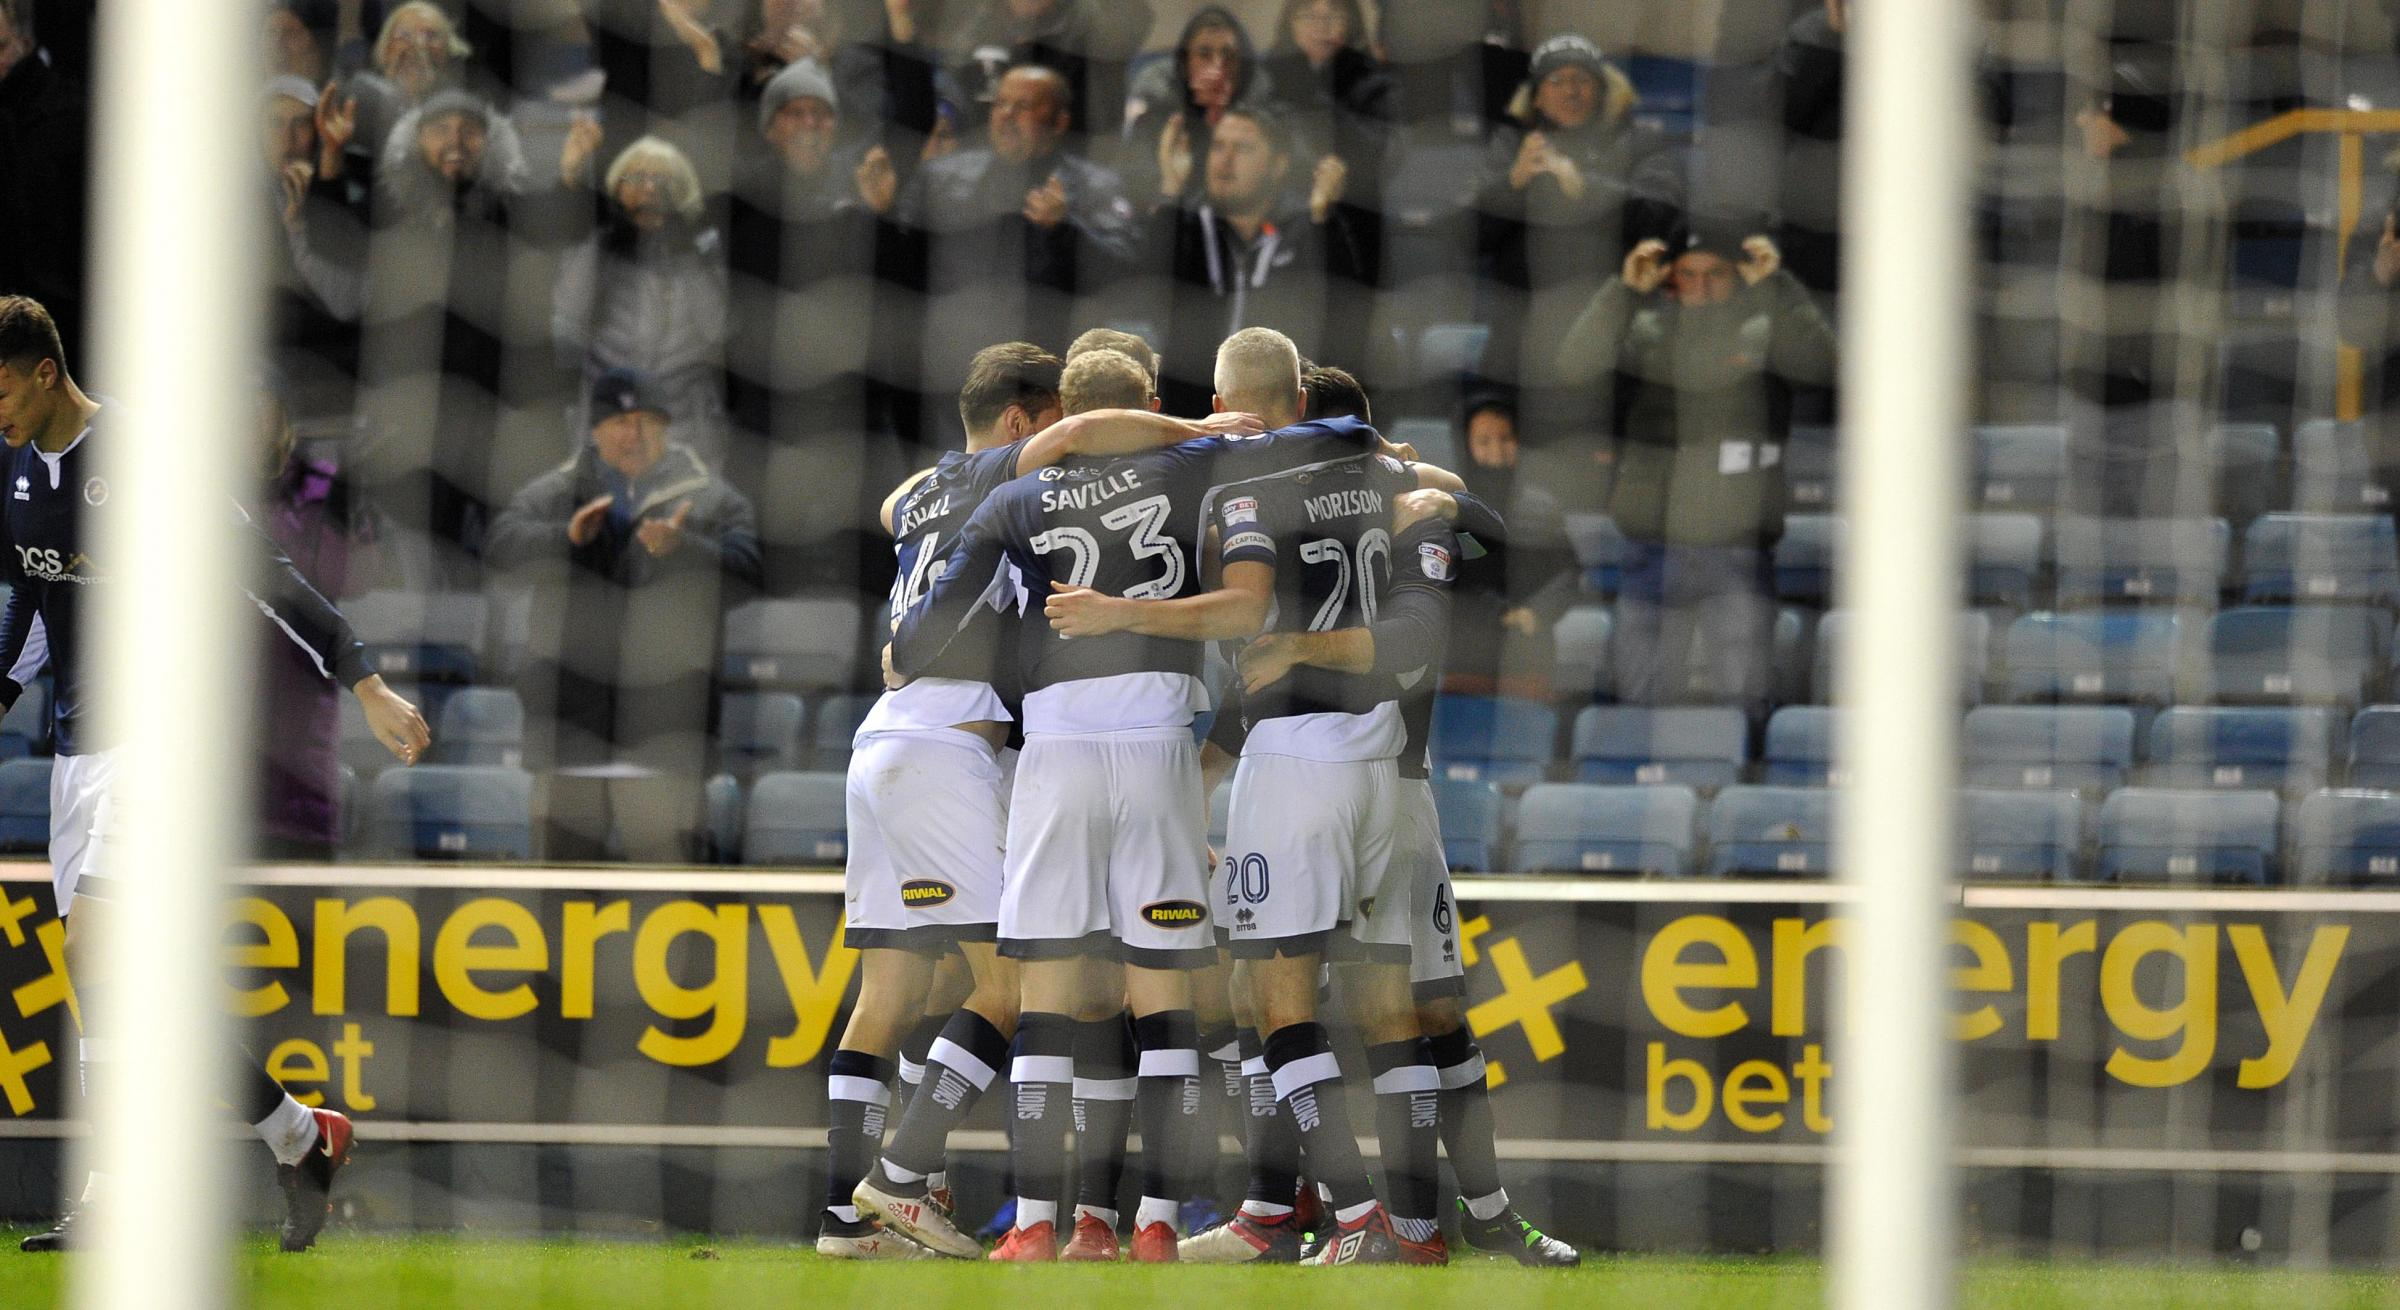 Millwall players celebrate against Sheffield Wednesday